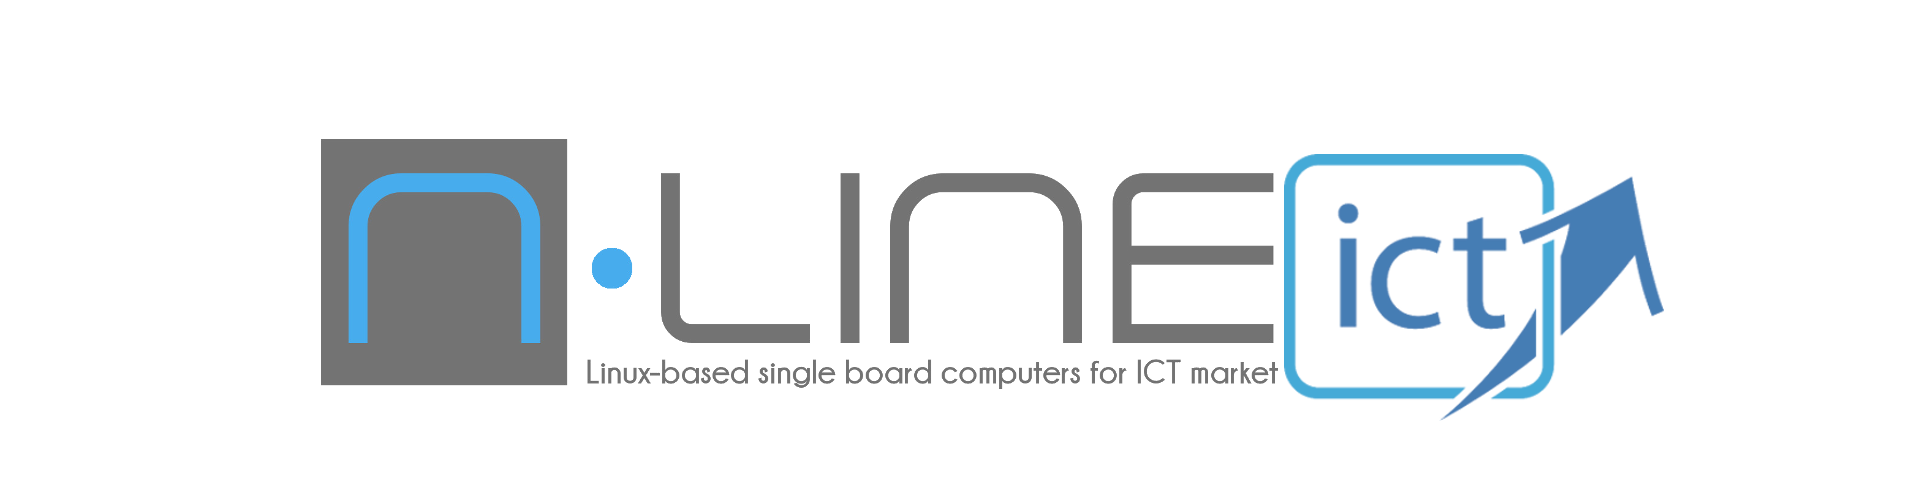 N-LINE - Linux based Single Board Computer for ICT - Novasom Industries